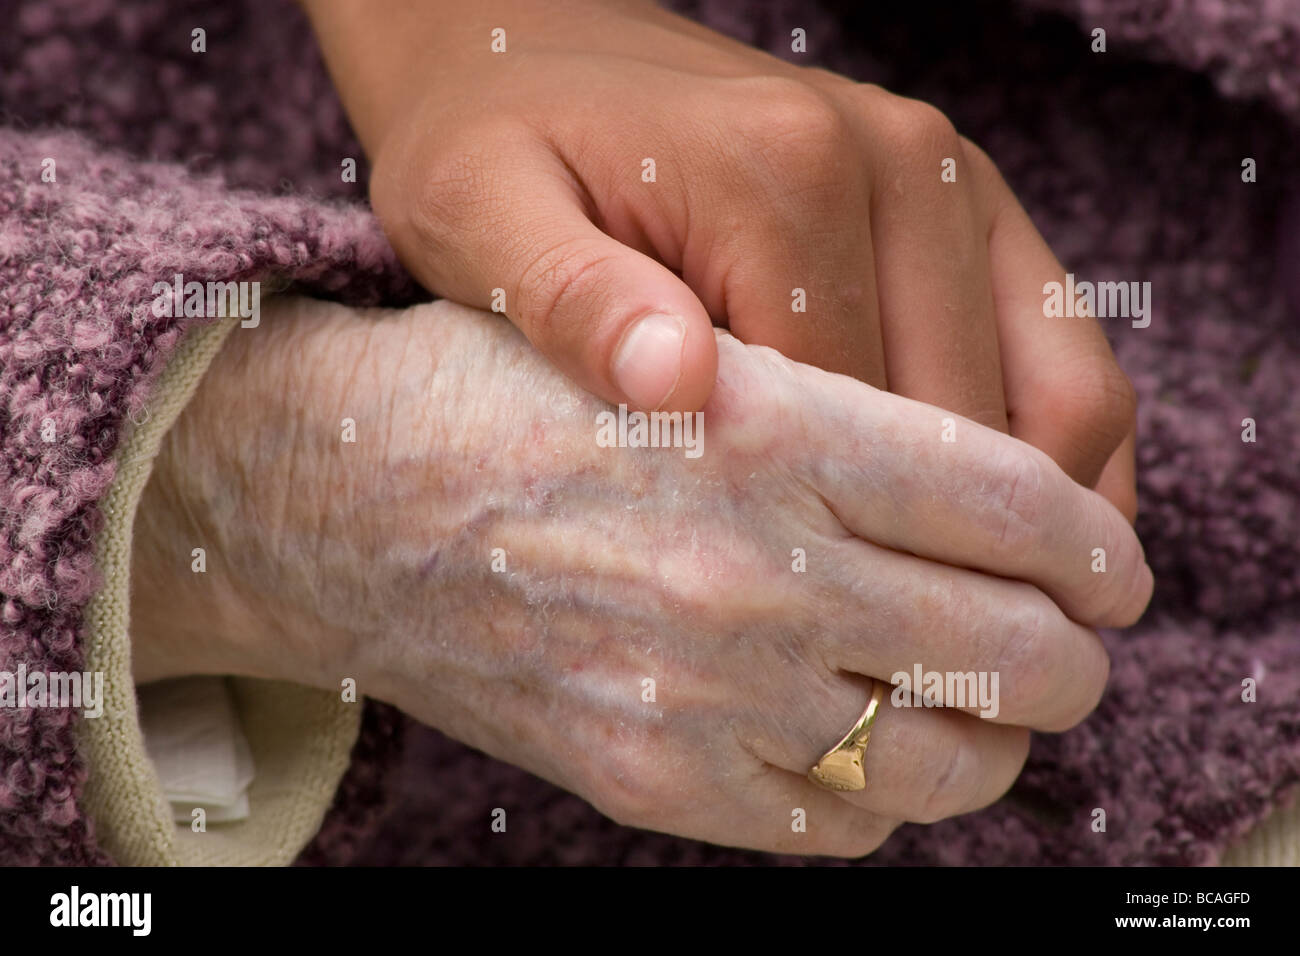 close up of young woman's hand holding hand of elderly lady - Stock Image